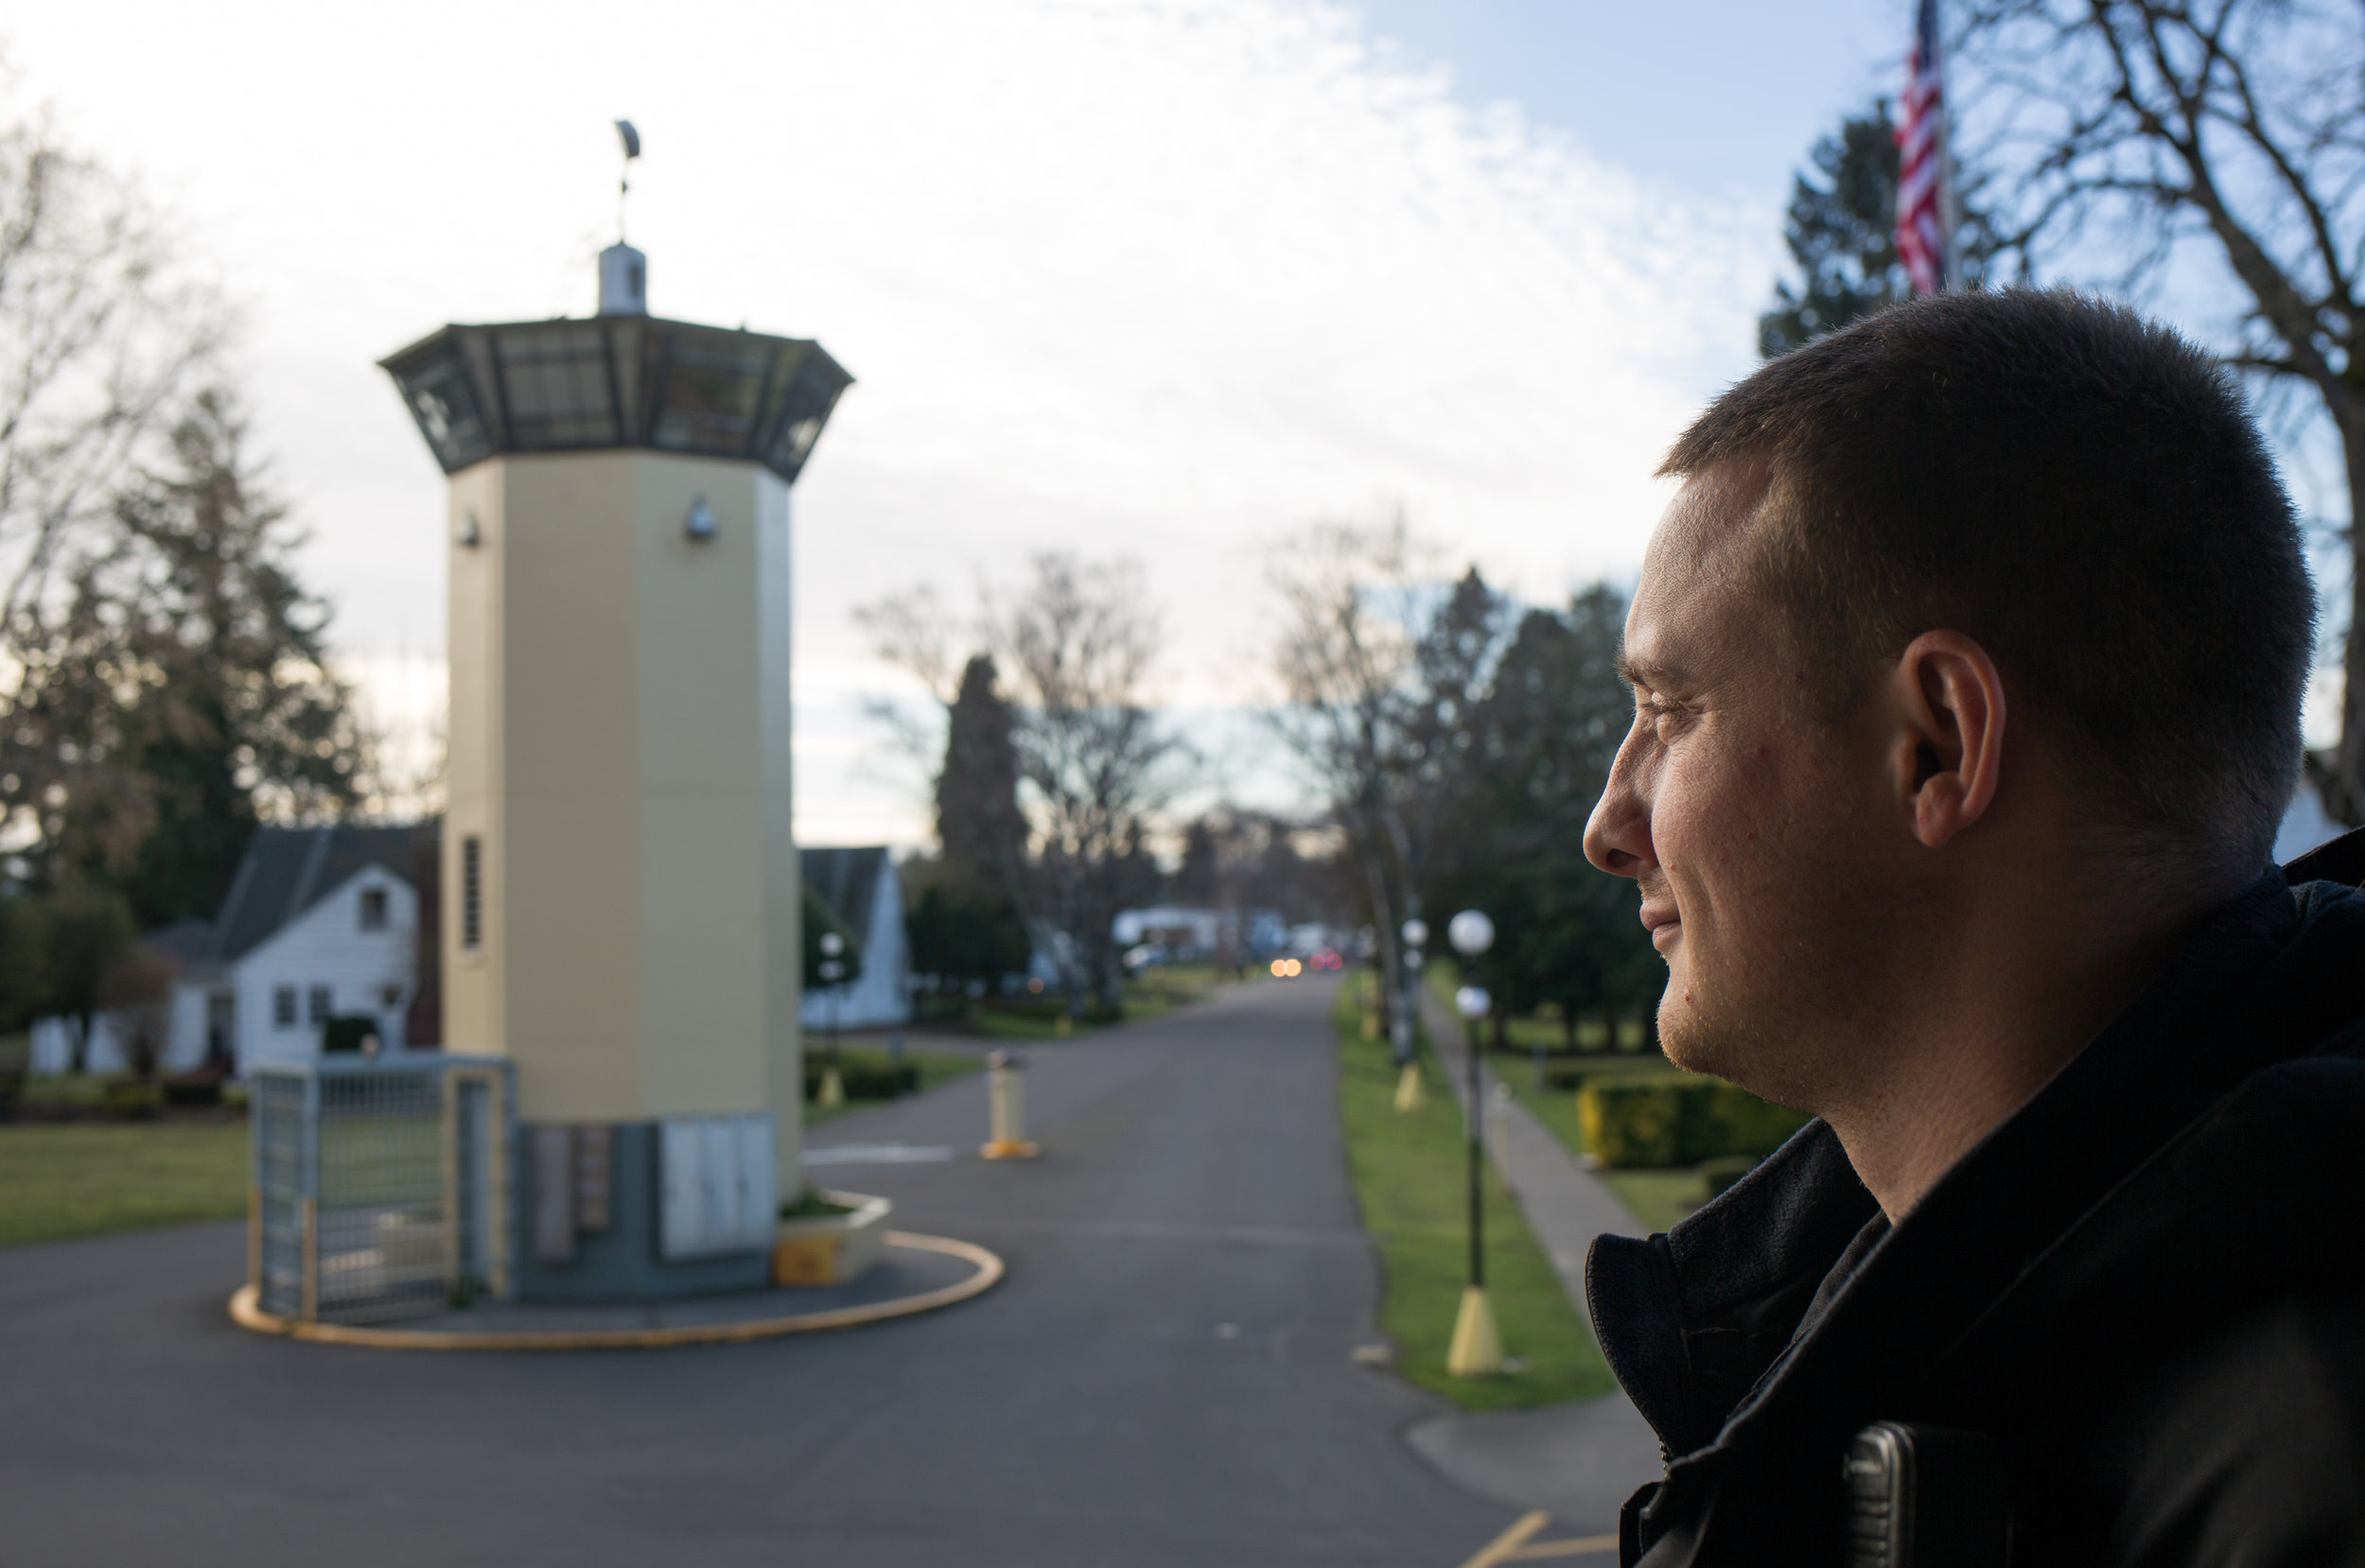 In 2014, OSP implemented a mindfulness program aimed to aid the mental health of prison employees through meditation, breathing exercises, and self-care training. For many of the CO's including Ashley, the mindfulness classes have dramatically improved the way they live and function both inside and outside of work. Ashley has continued to use the mindfulness tactics and strategies at home. Him and his significant other partake in full body scans and meditation in the evening to help guide sleep. Ashley also continues to works as a leader in crisis intervention to help aid traumatic events newer staff members have experienced.